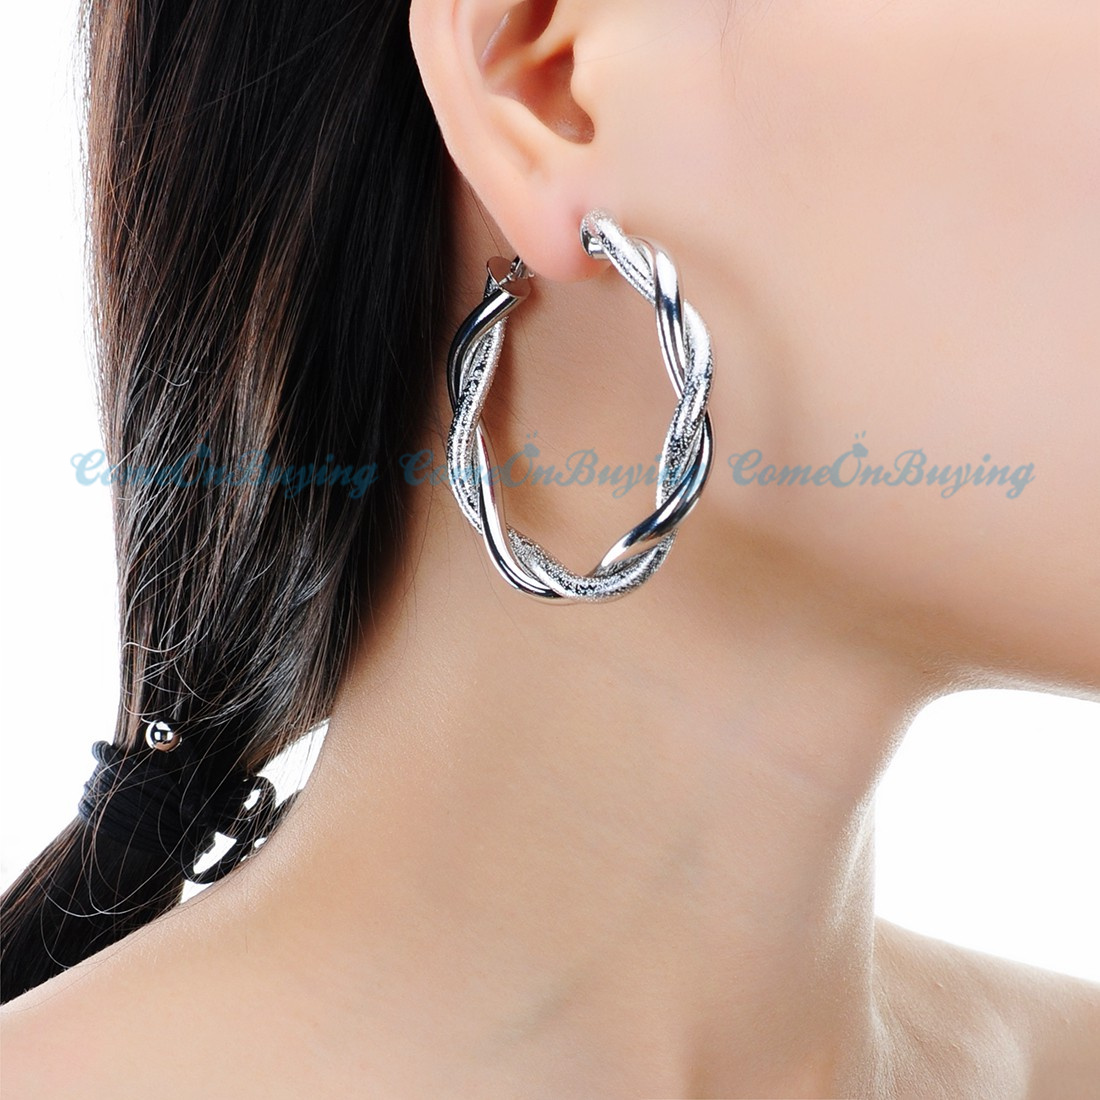 Clip On Earrings Gold Hoop 2 36